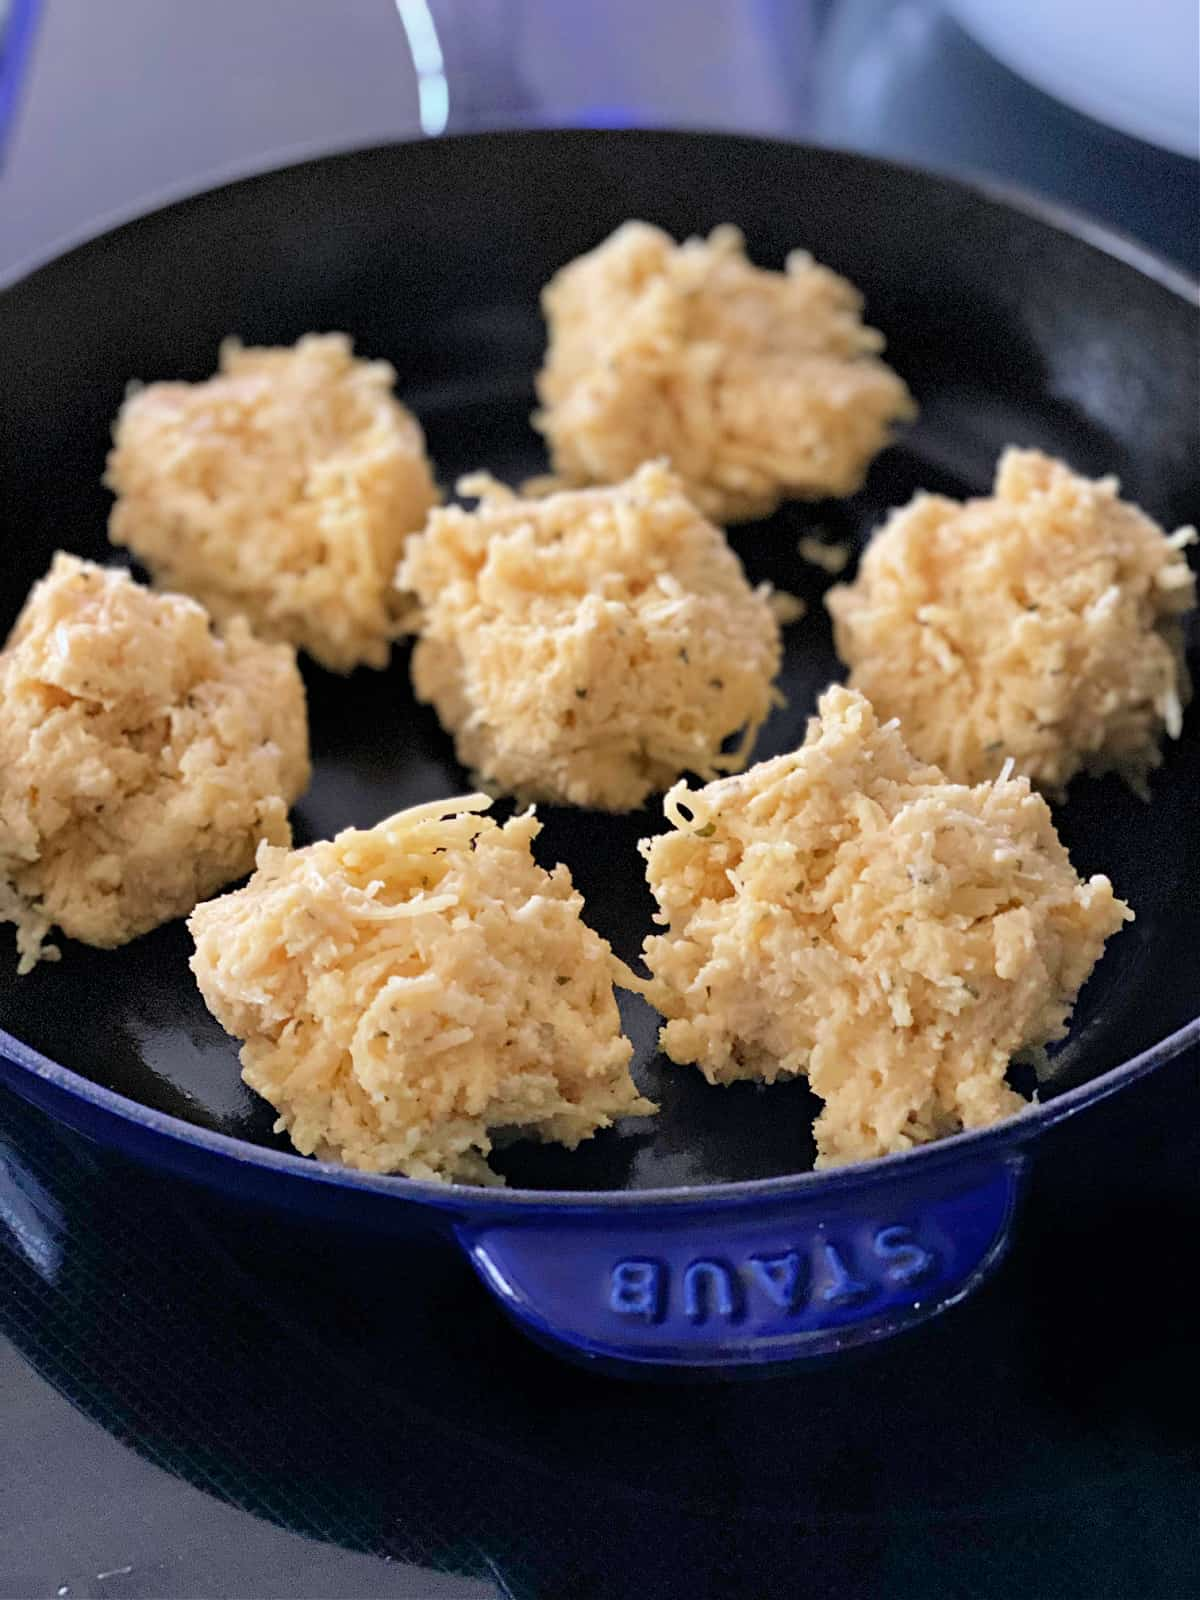 biscuit dough in a skillet